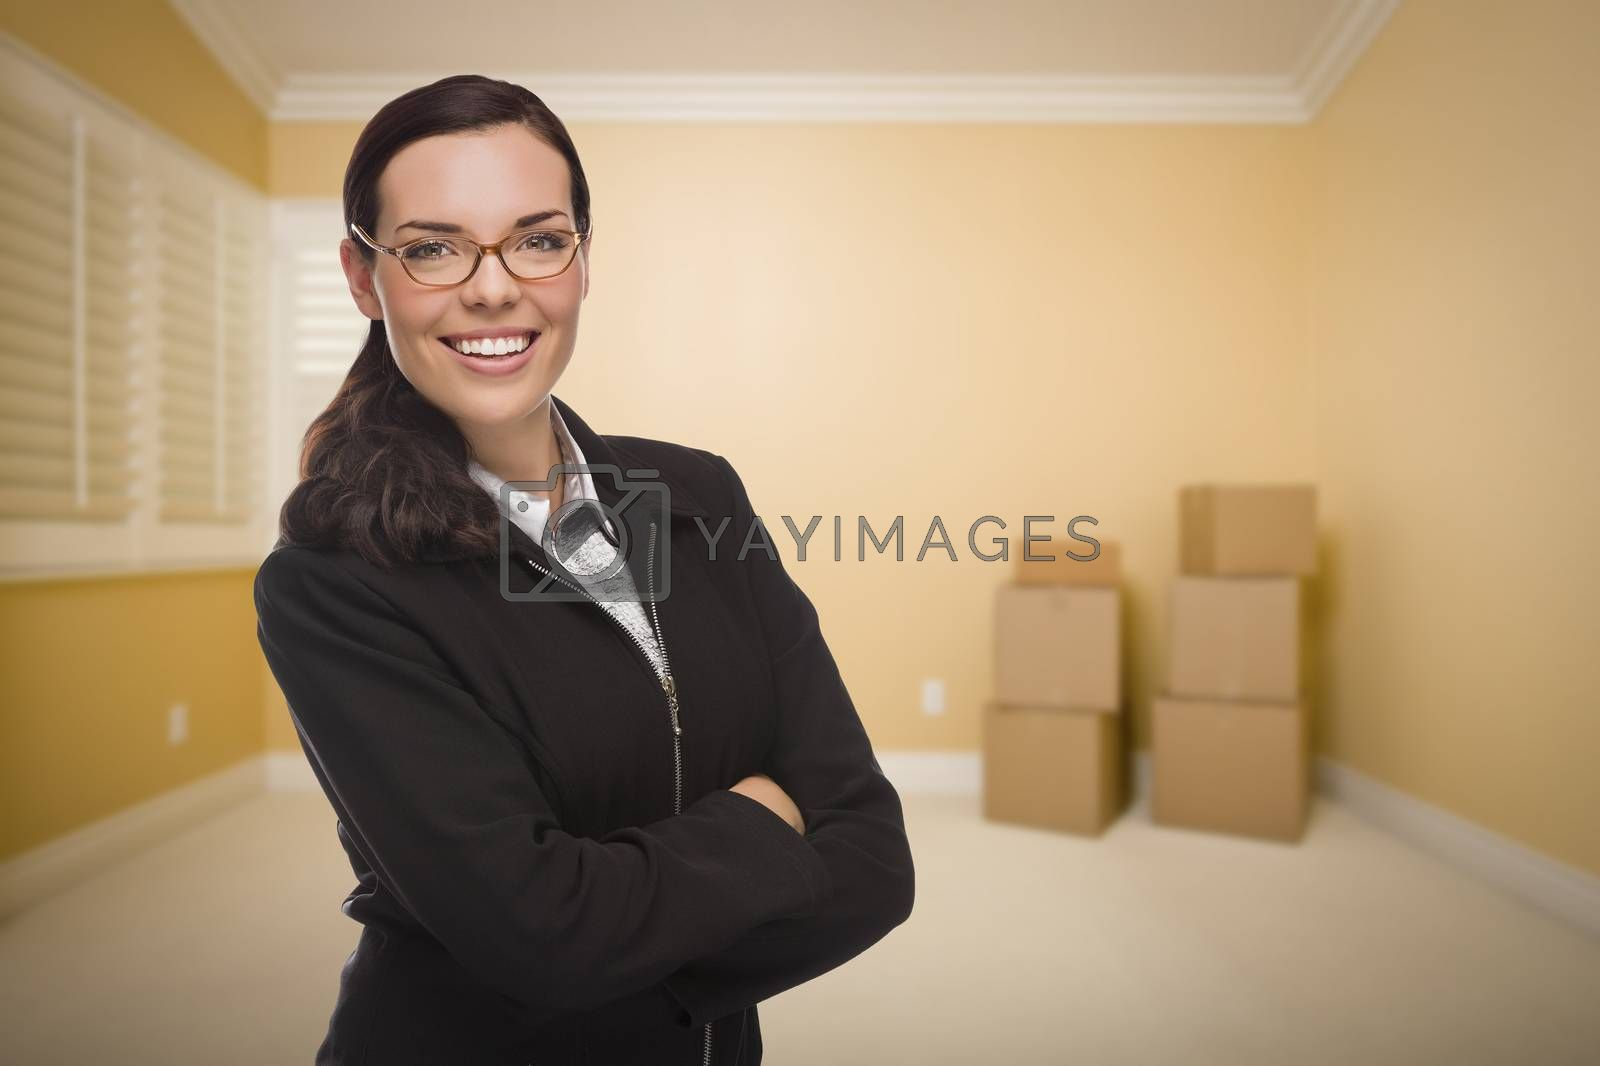 Attractive Confident Mixed Race Woman in Empty Room with Boxes.